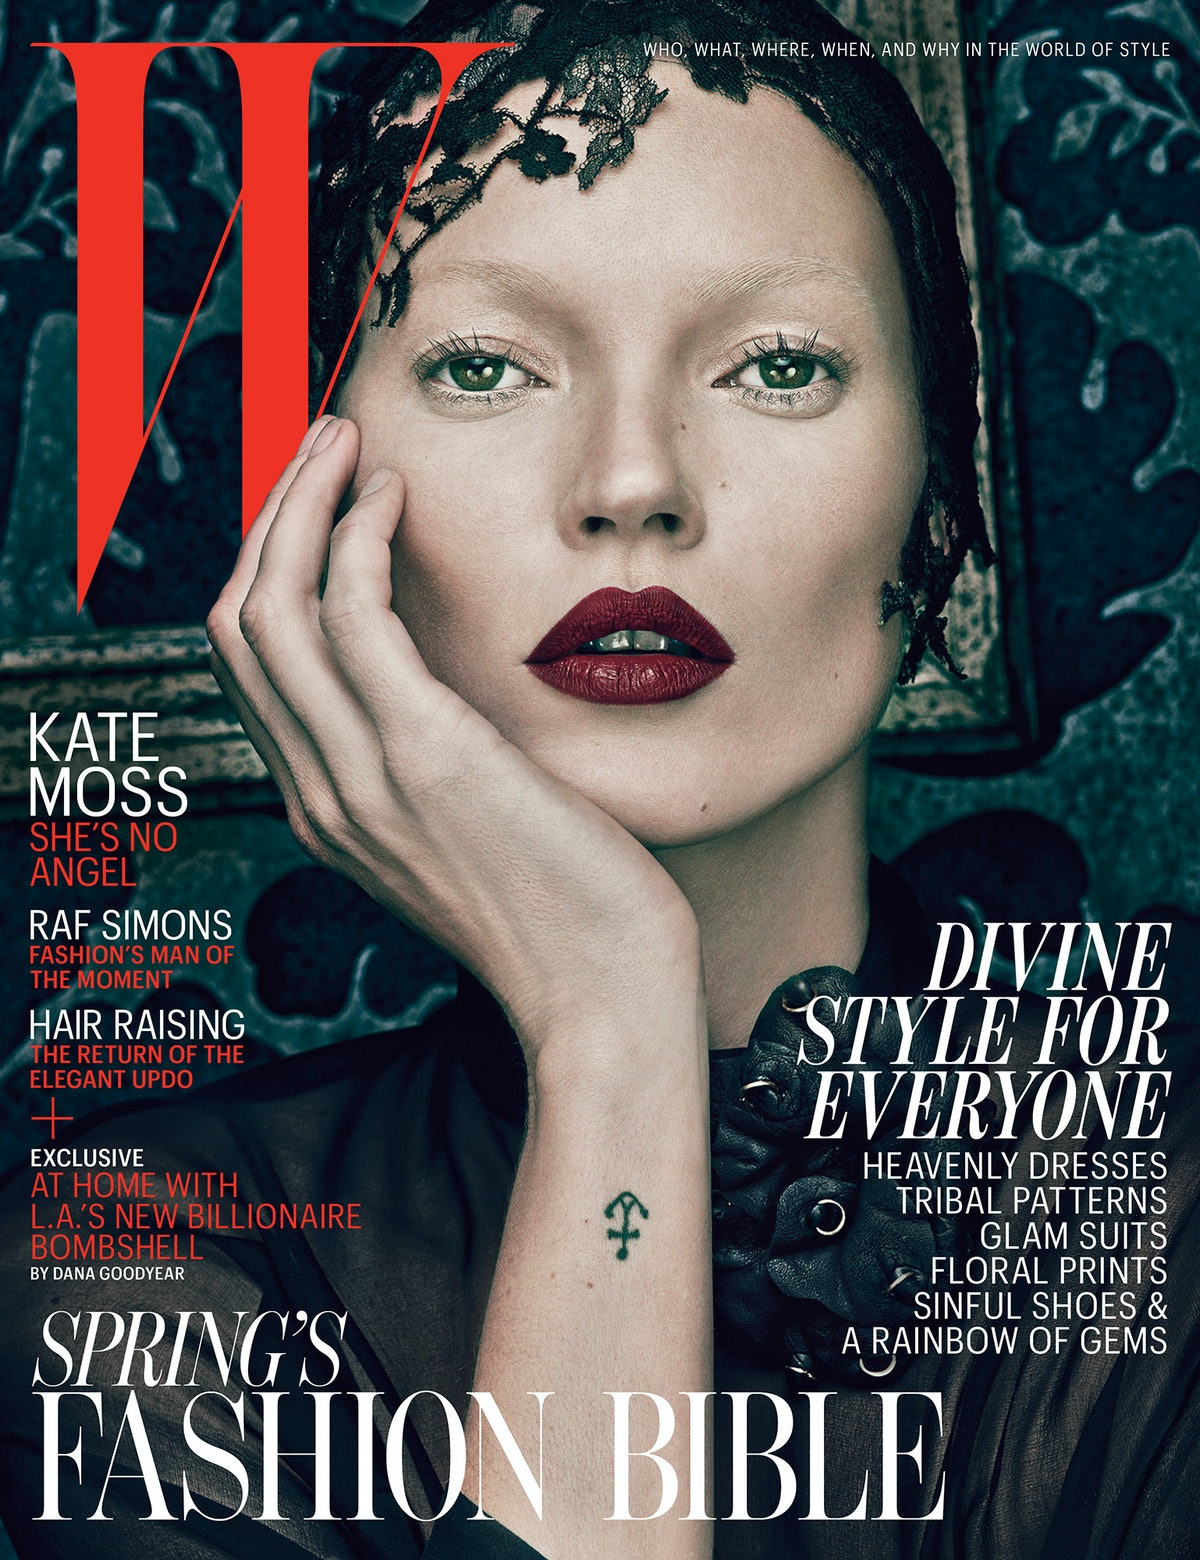 Kate Moss on the cover of W Magazine March 2012